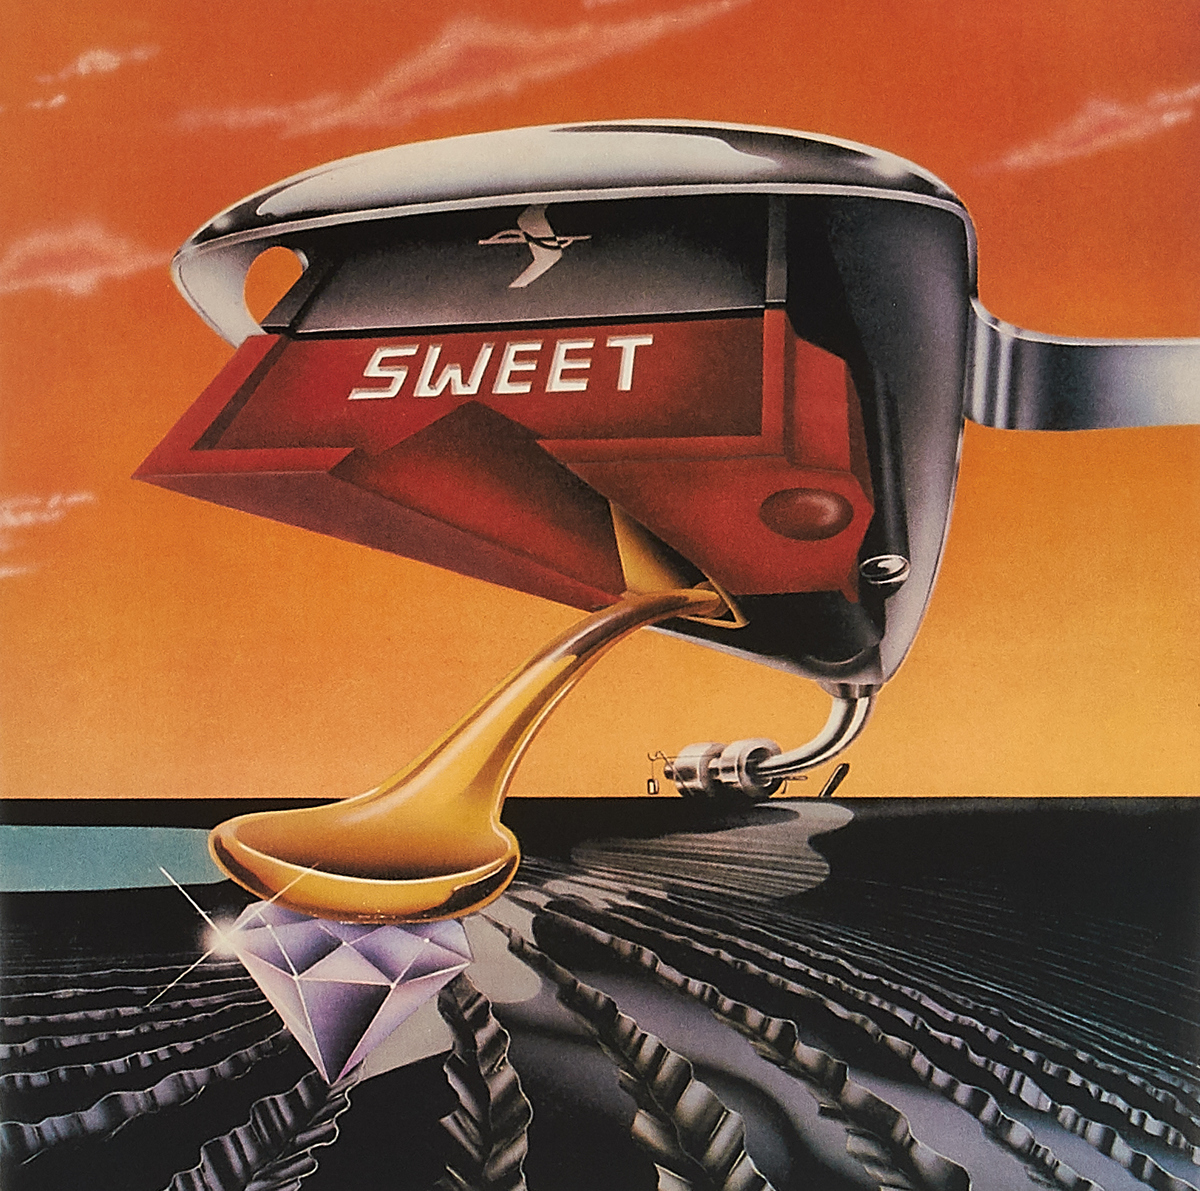 Sweet Sweet. Off The Record (New Vinyl Edition) (LP) sweet sweet desolation boulevard new vinyl edition lp